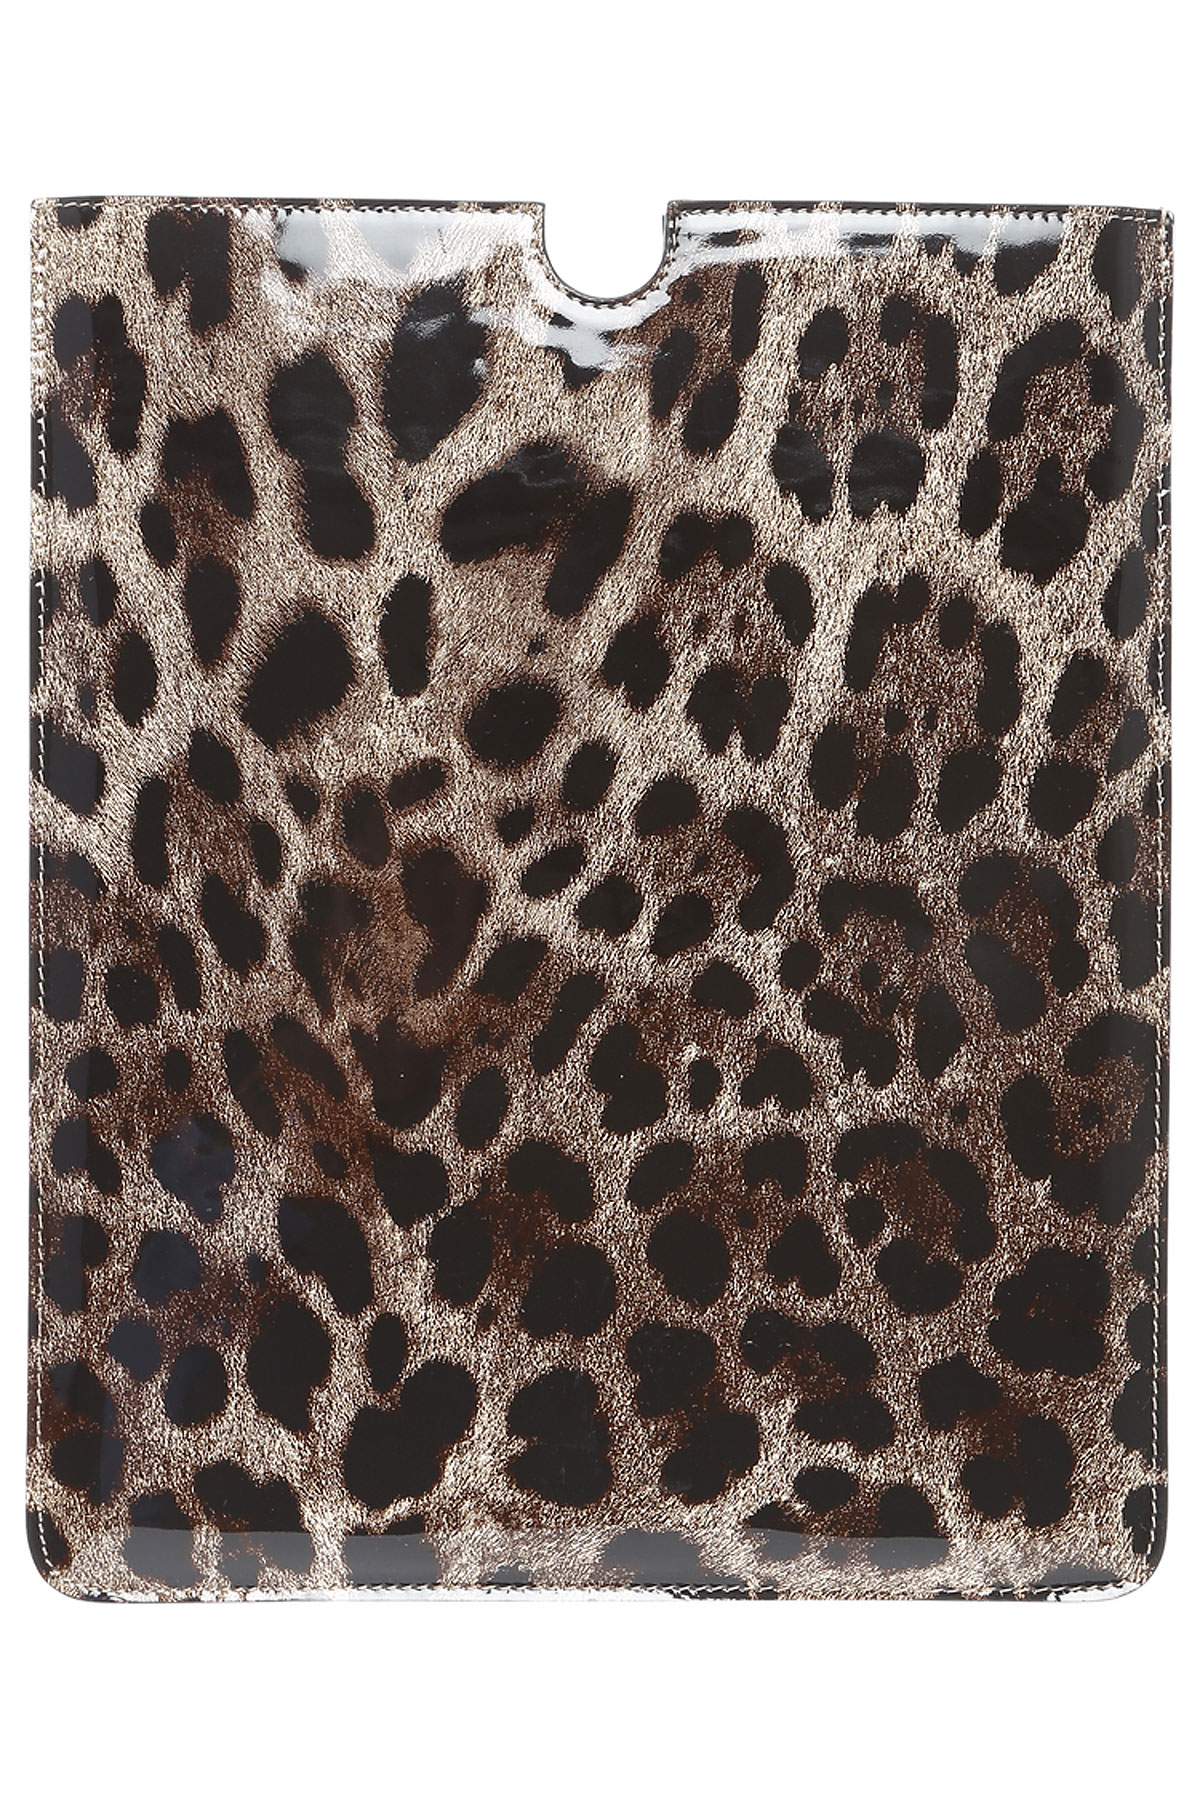 Image of Dolce & Gabbana iPad On Sale in Outlet, Leopard, Patent Leather, 2017